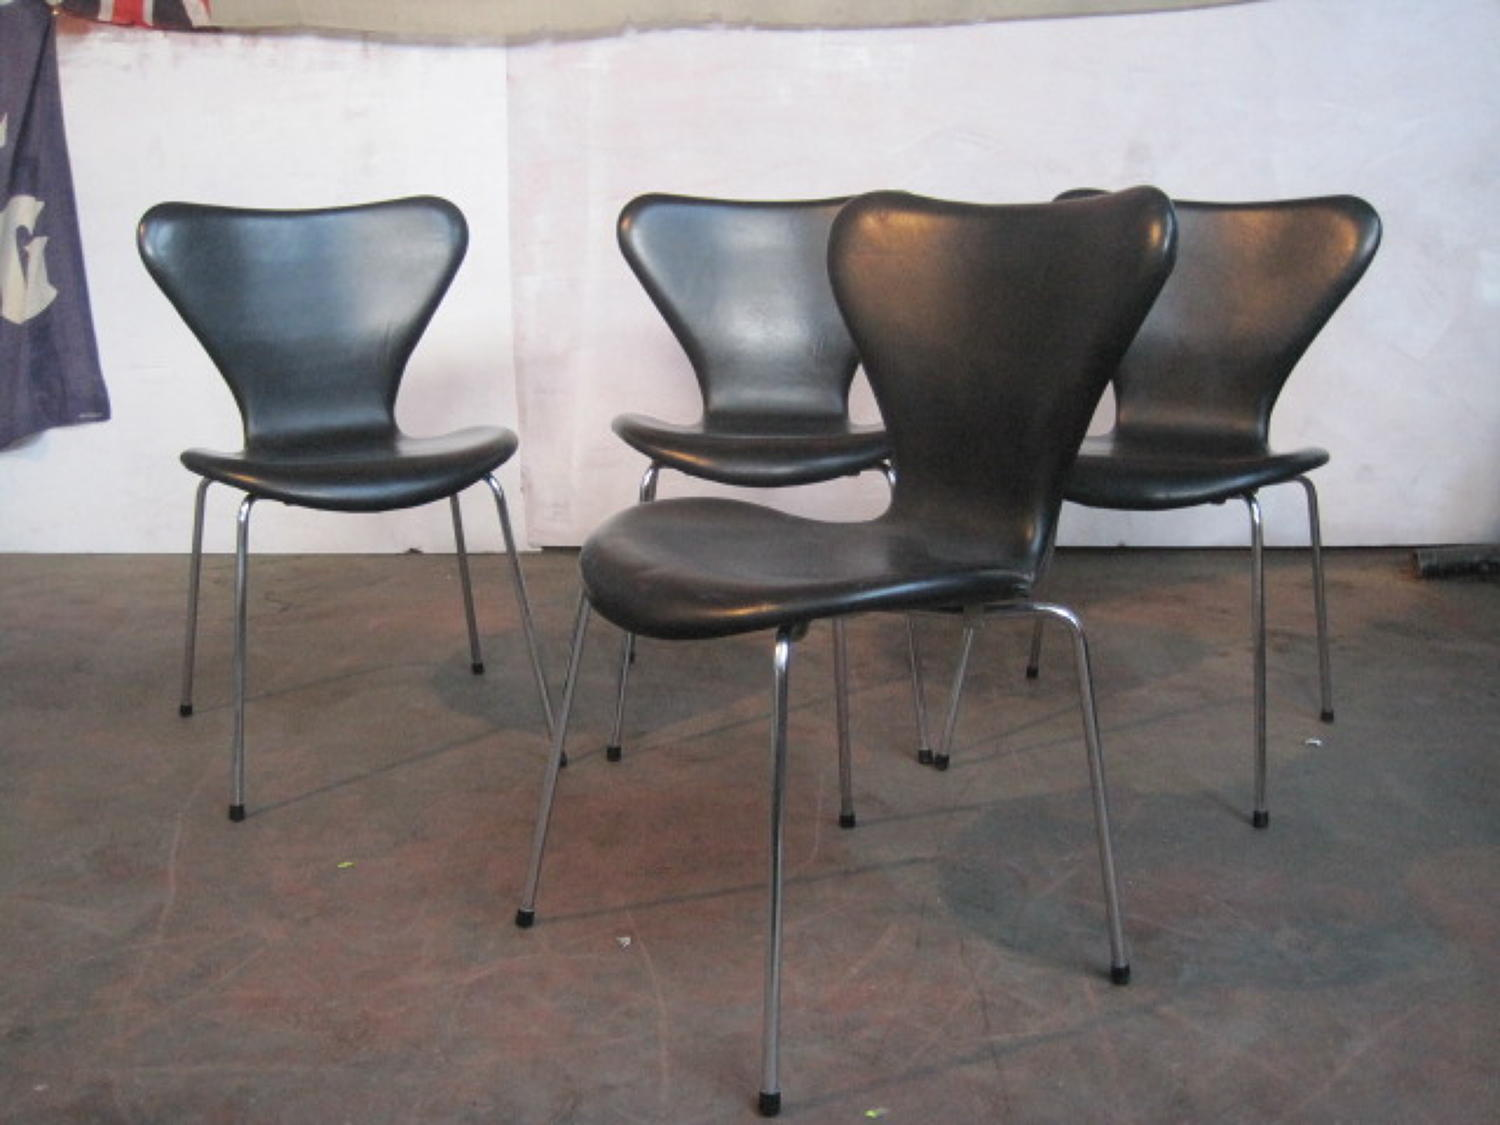 Four Series 7 chairs by Arne Jacobsen